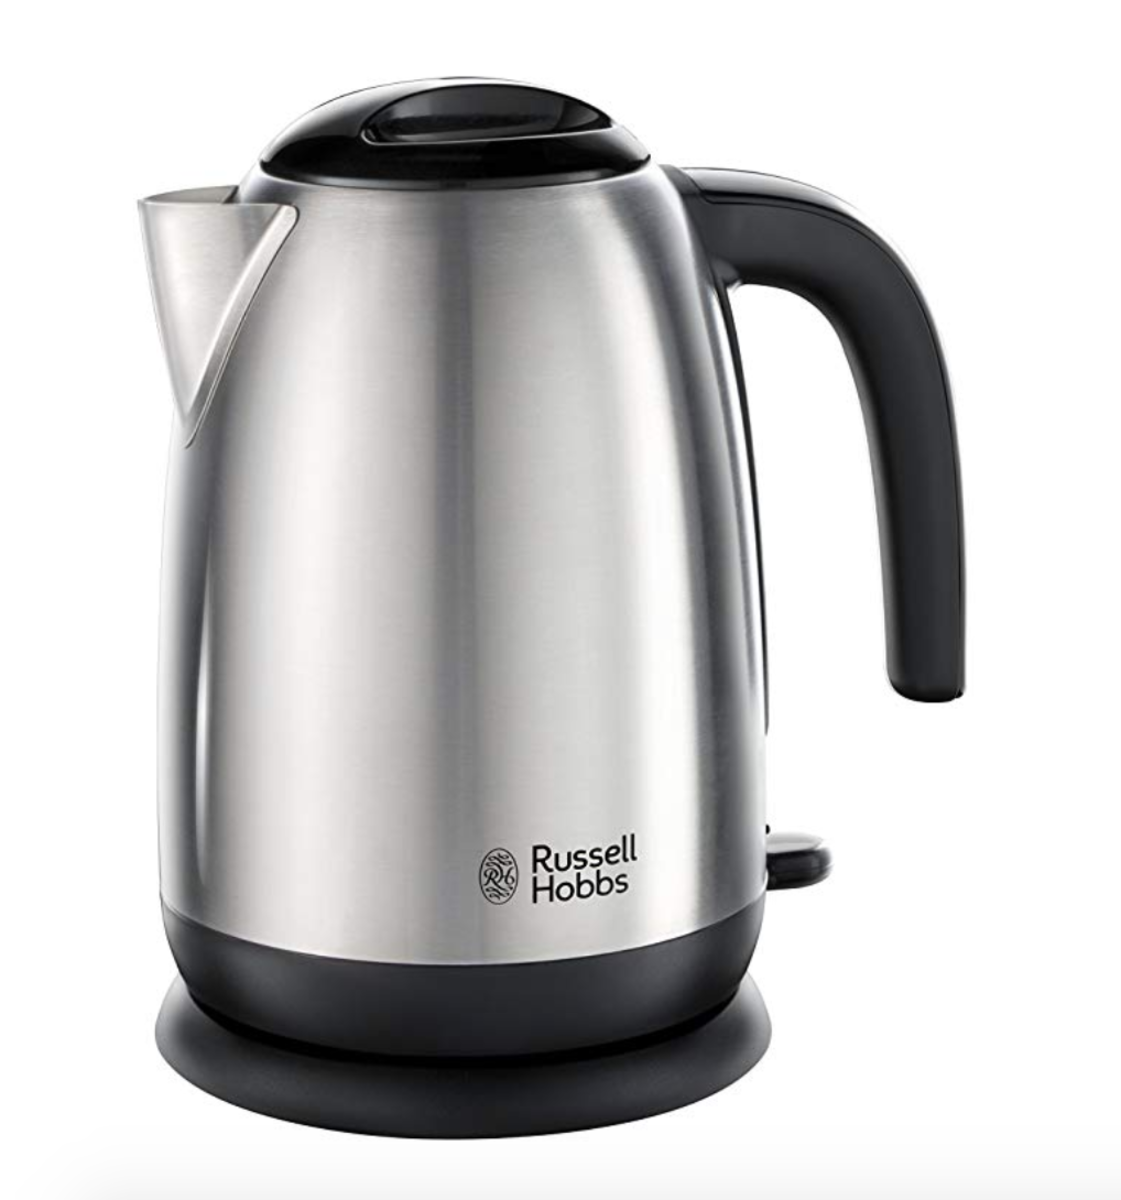 Learn how to descale your electric kettle without any harsh chemicals or cleaners.